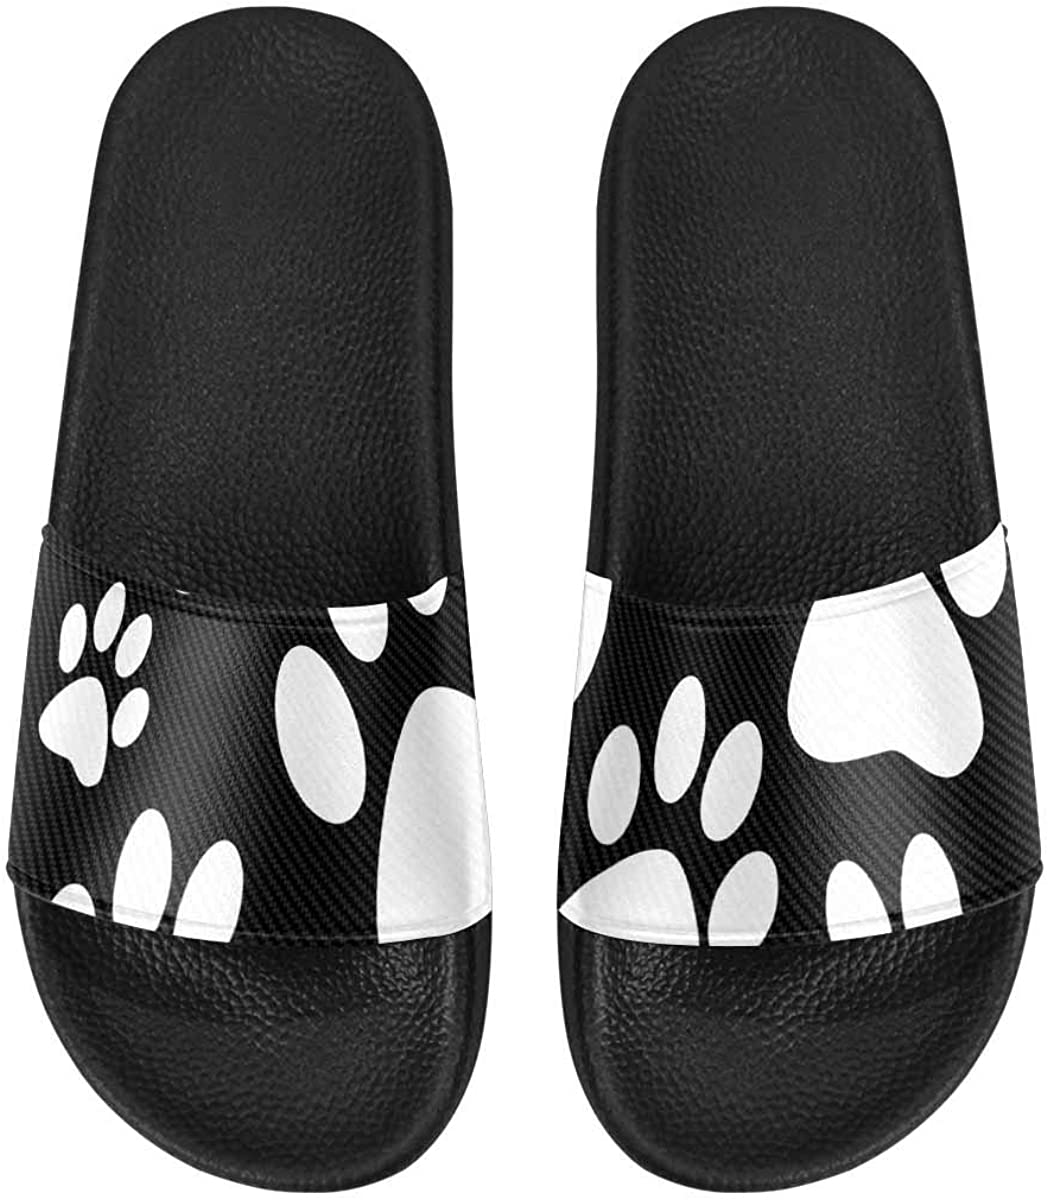 InterestPrint Outdoor Stylish Sandals Slides for Women Black and